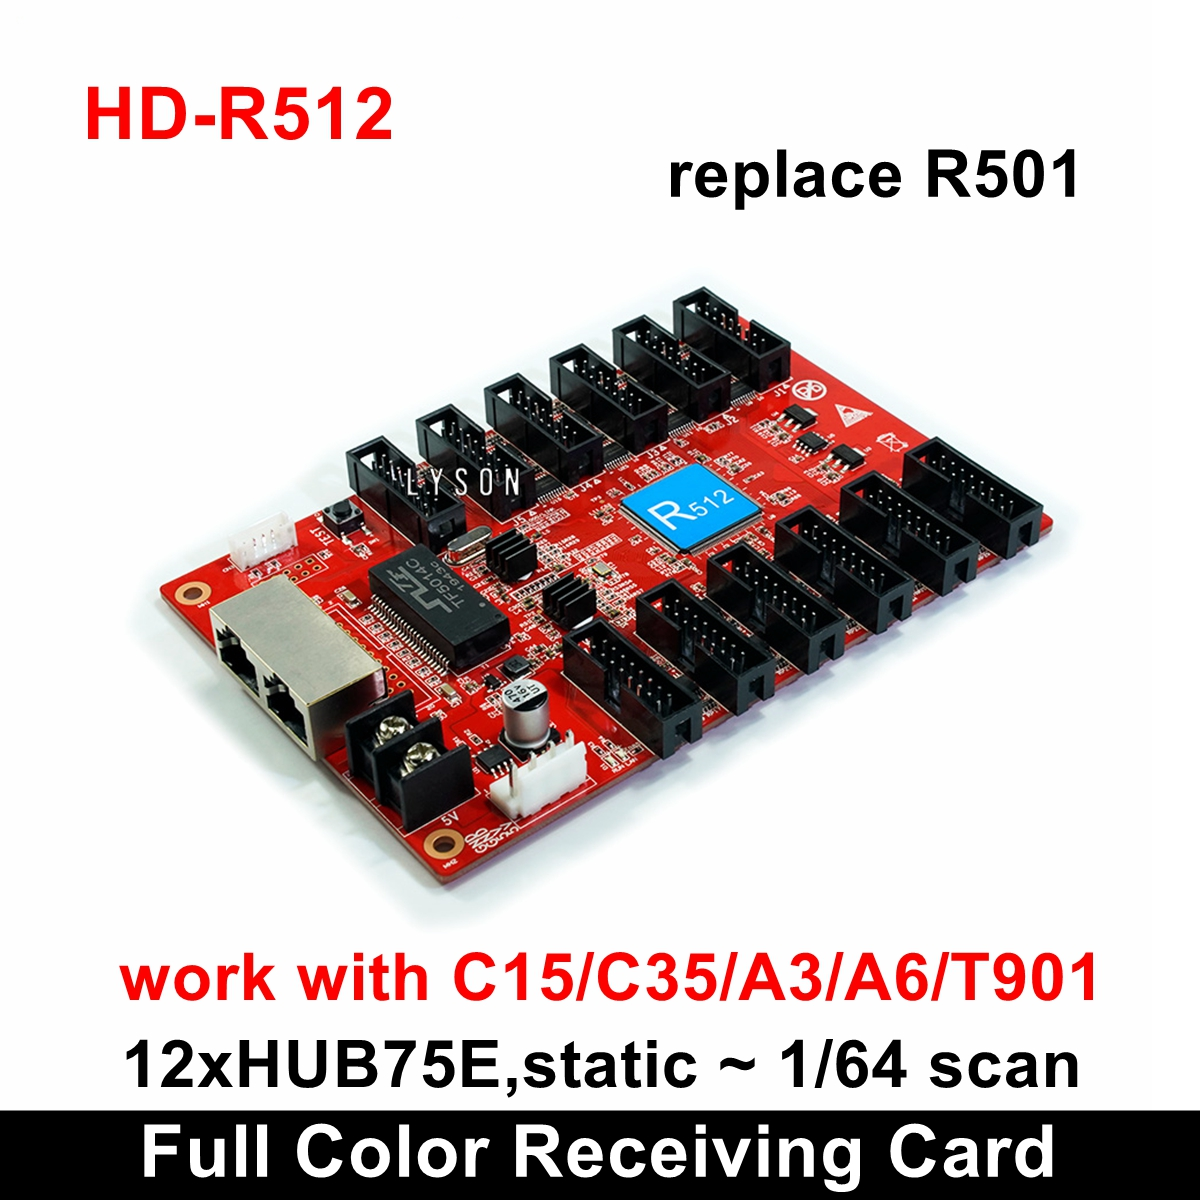 Huidu HD-R512 Full Color Receiving Card Replace Old HD-R501 Work With HD-C15C HD-C35C HD-A3 HD-T901 Sending